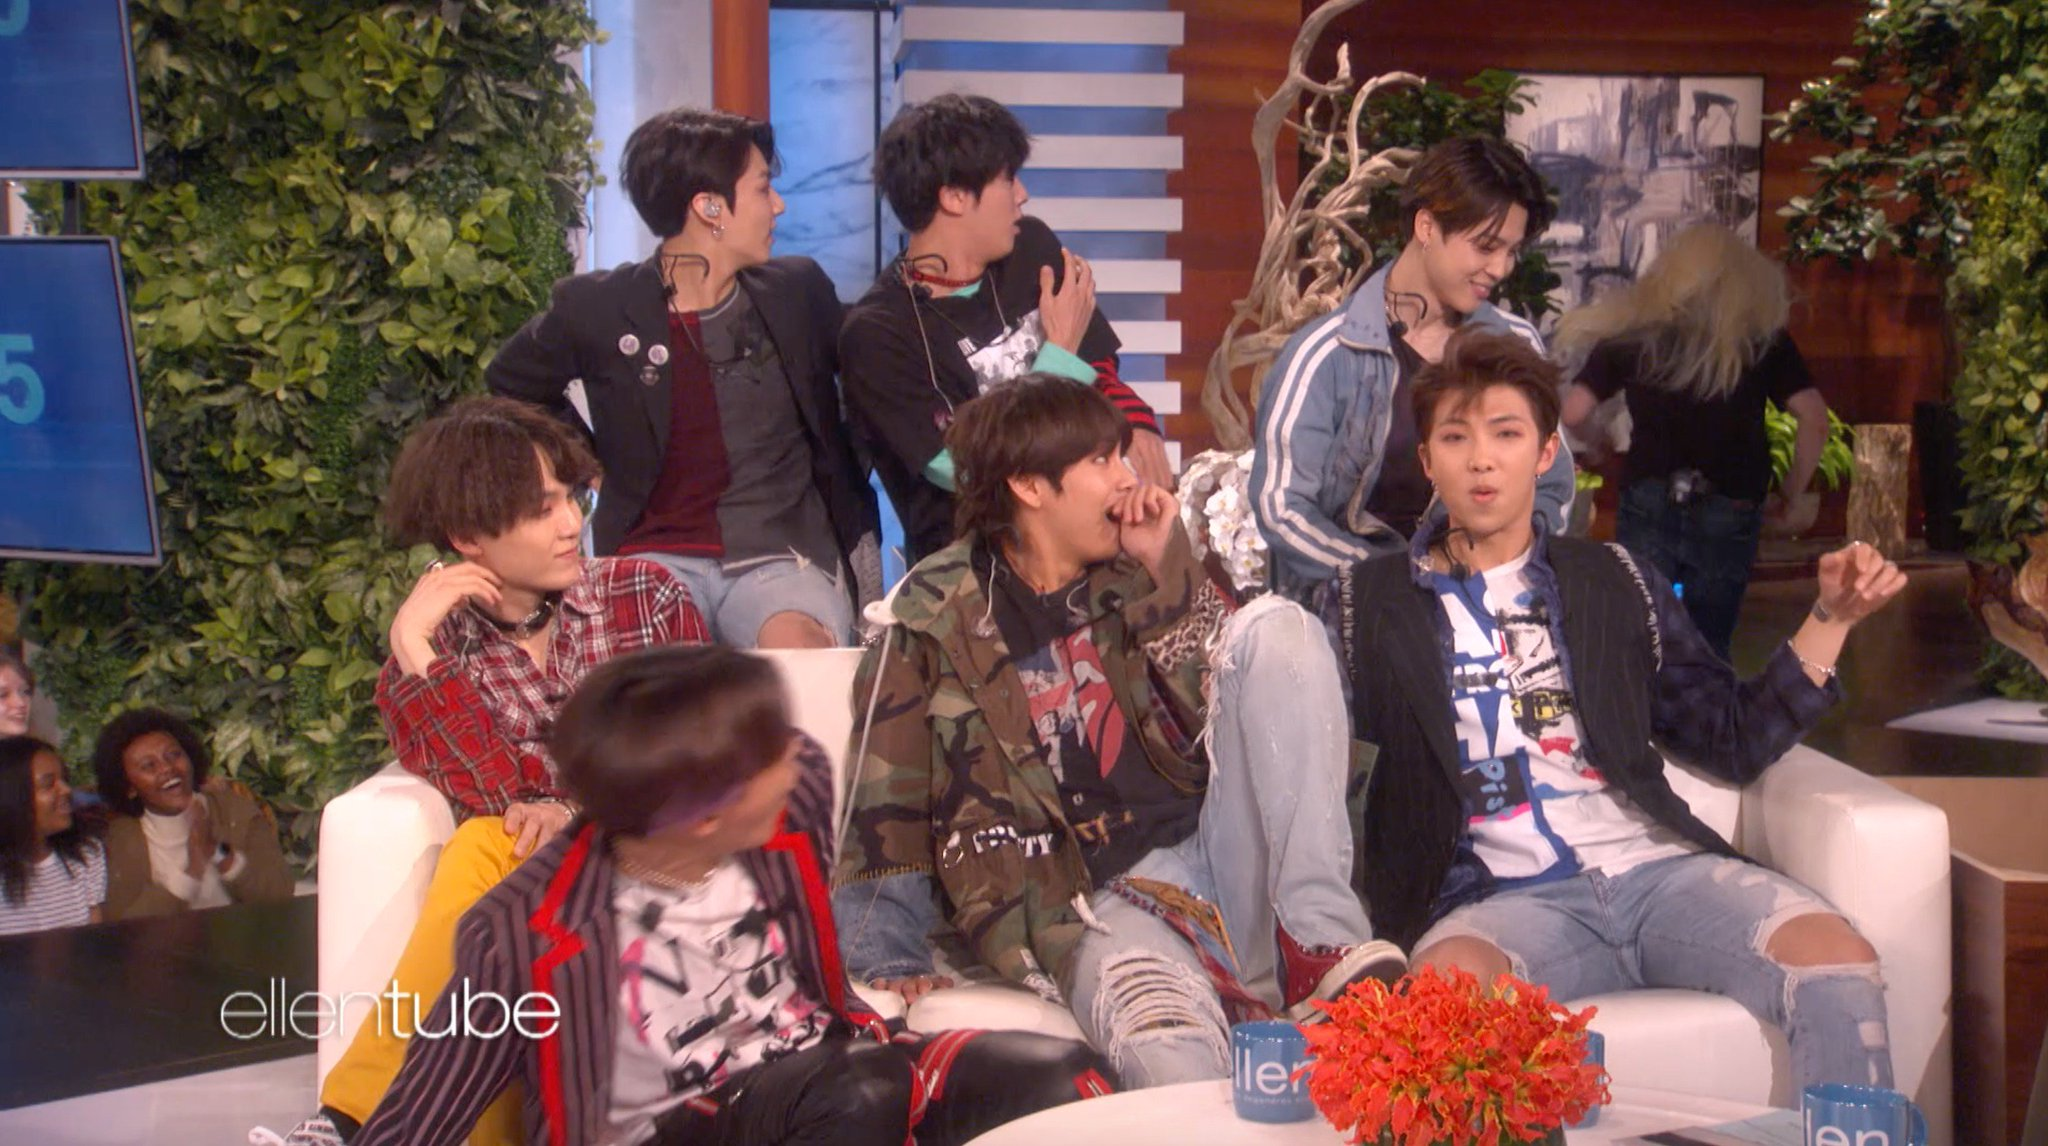 I scared the S out of BTS. @BTS_twt #BTSxEllen  Watch the full clip here: https://t.co/yb6o0xw9dT https://t.co/a7nuSmZ6Pv